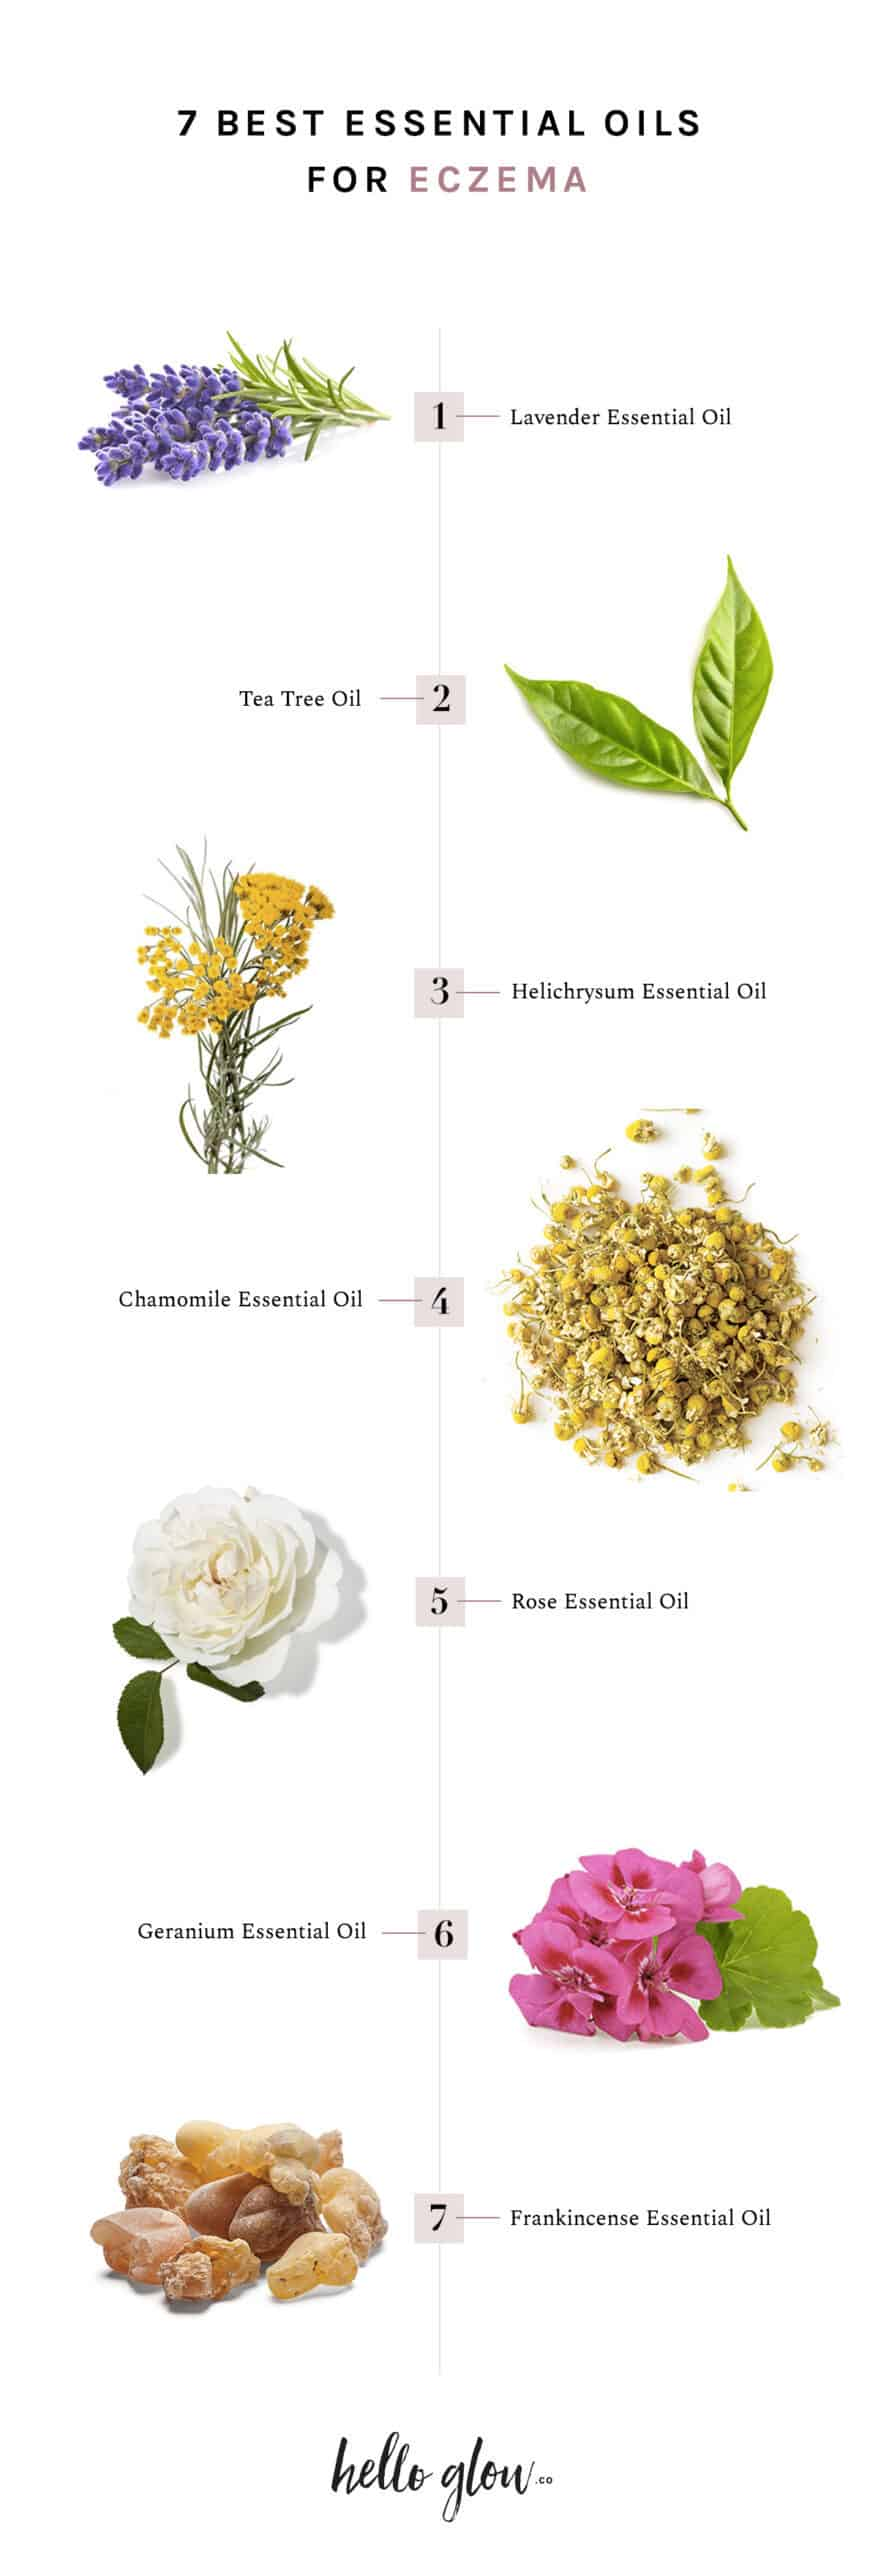 7 Best Essential Oils for Eczema - HelloGlow.co